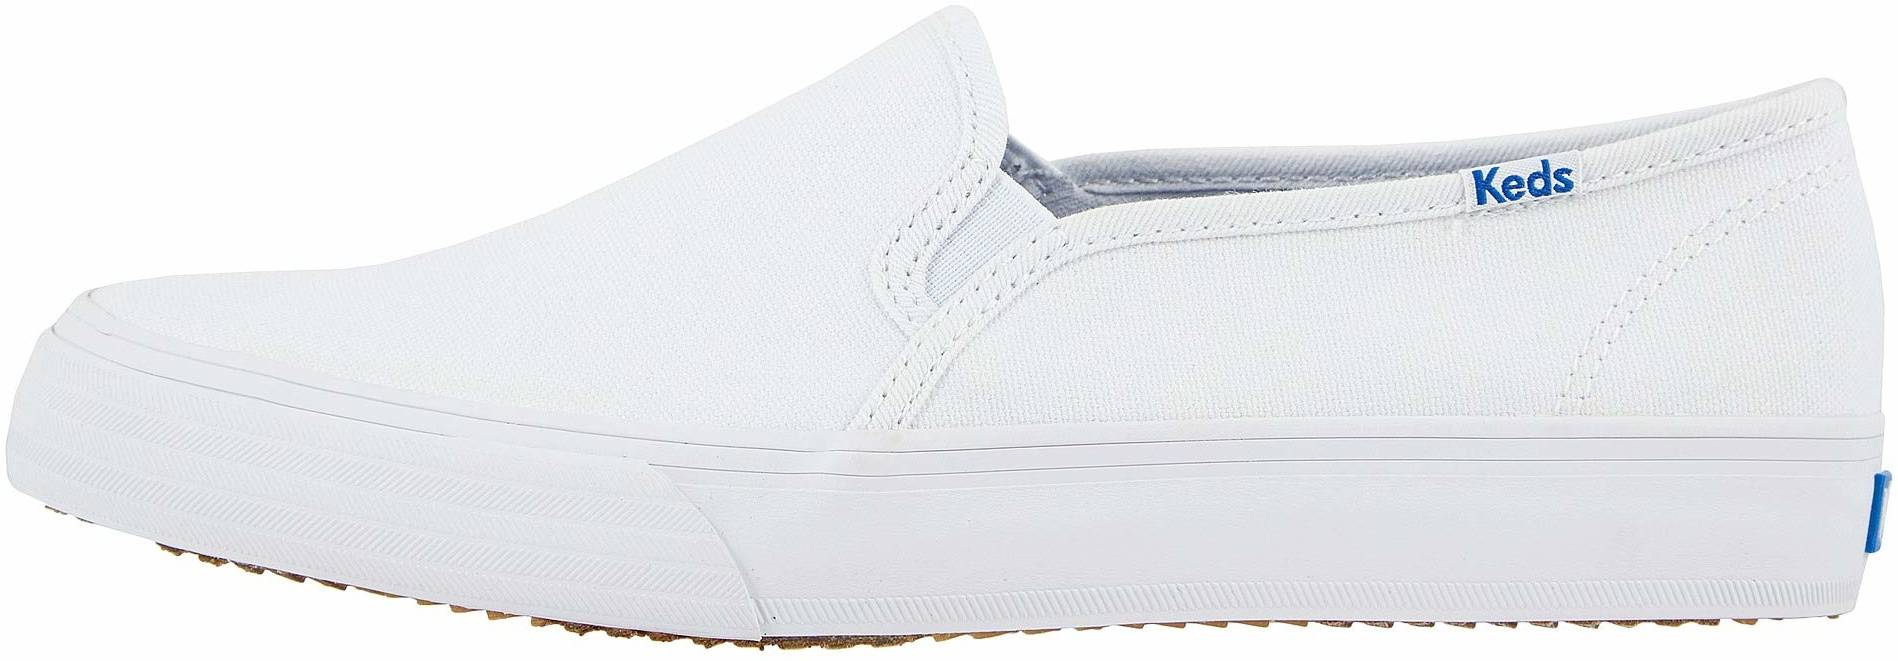 Only $21 + Review of Keds Double Decker